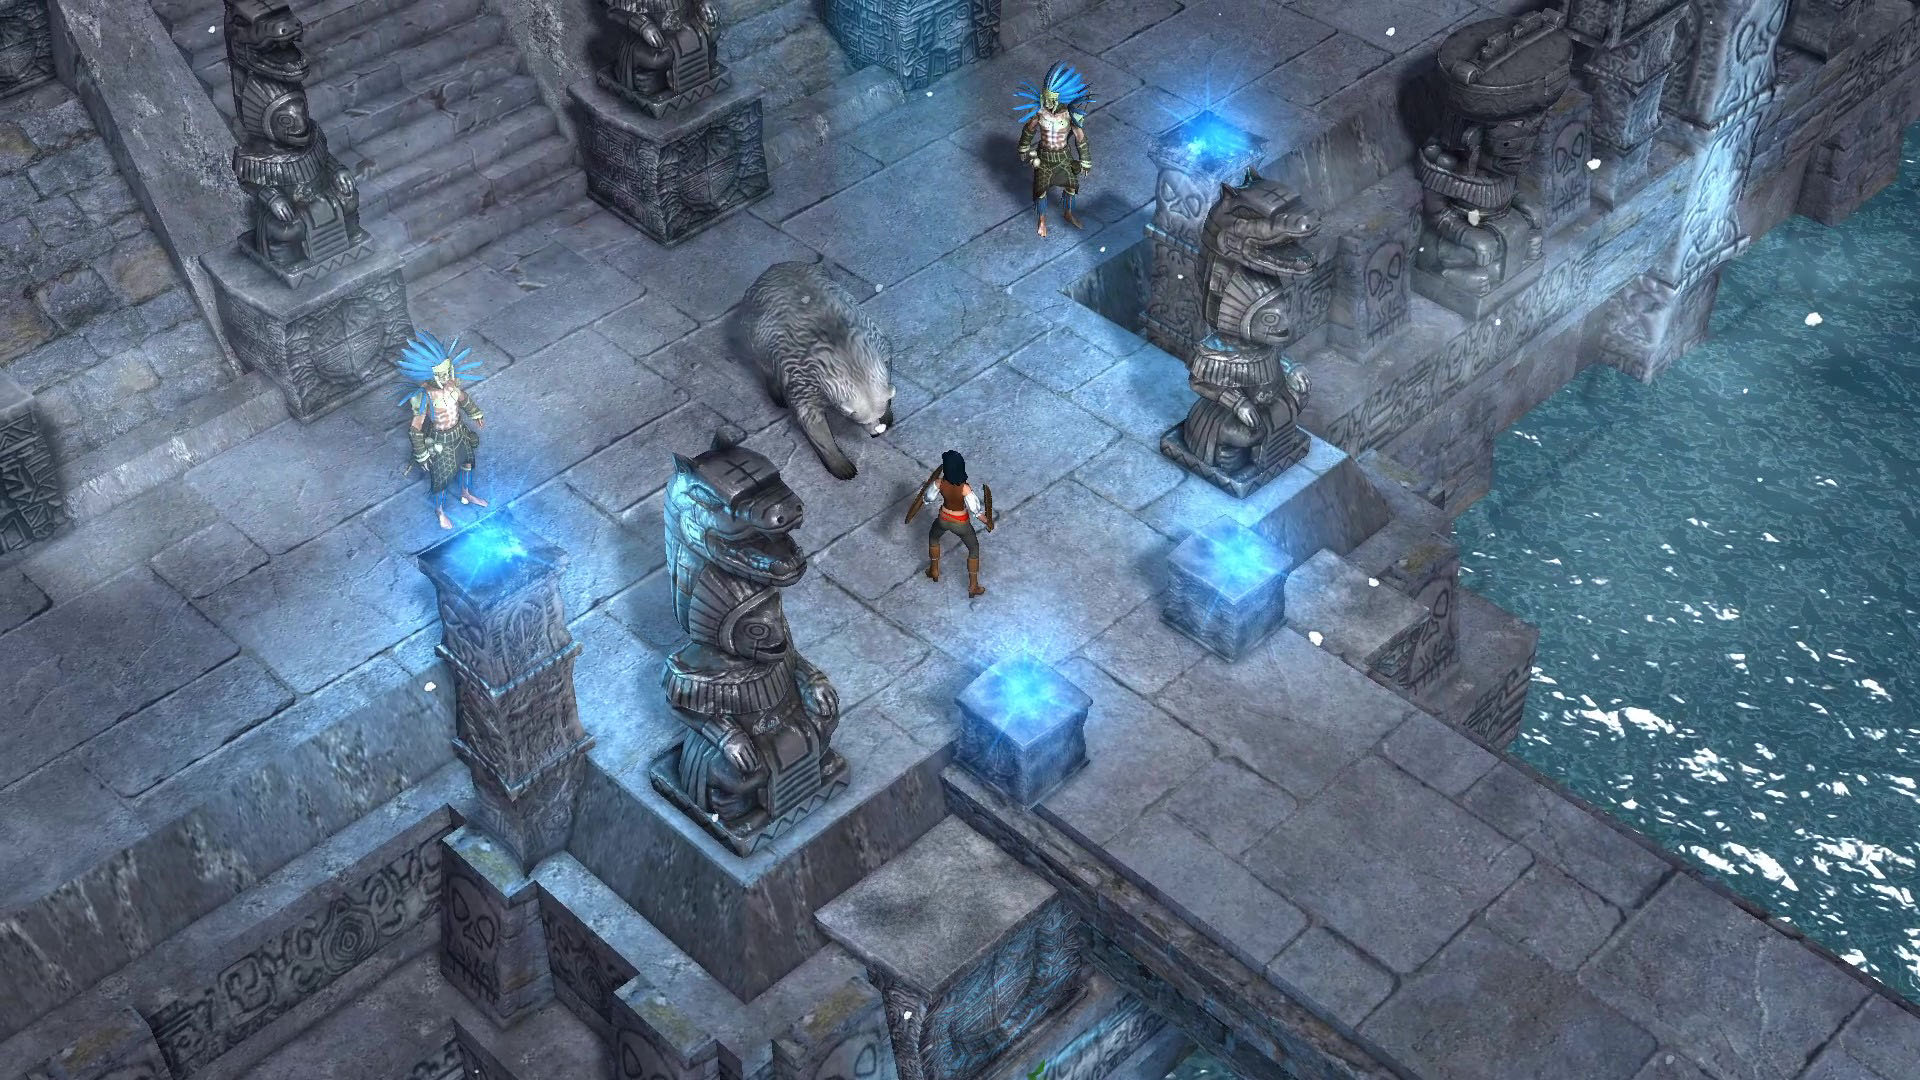 A screenshot of Aluna in a temple setting, about to fight a polar bear and two goons.